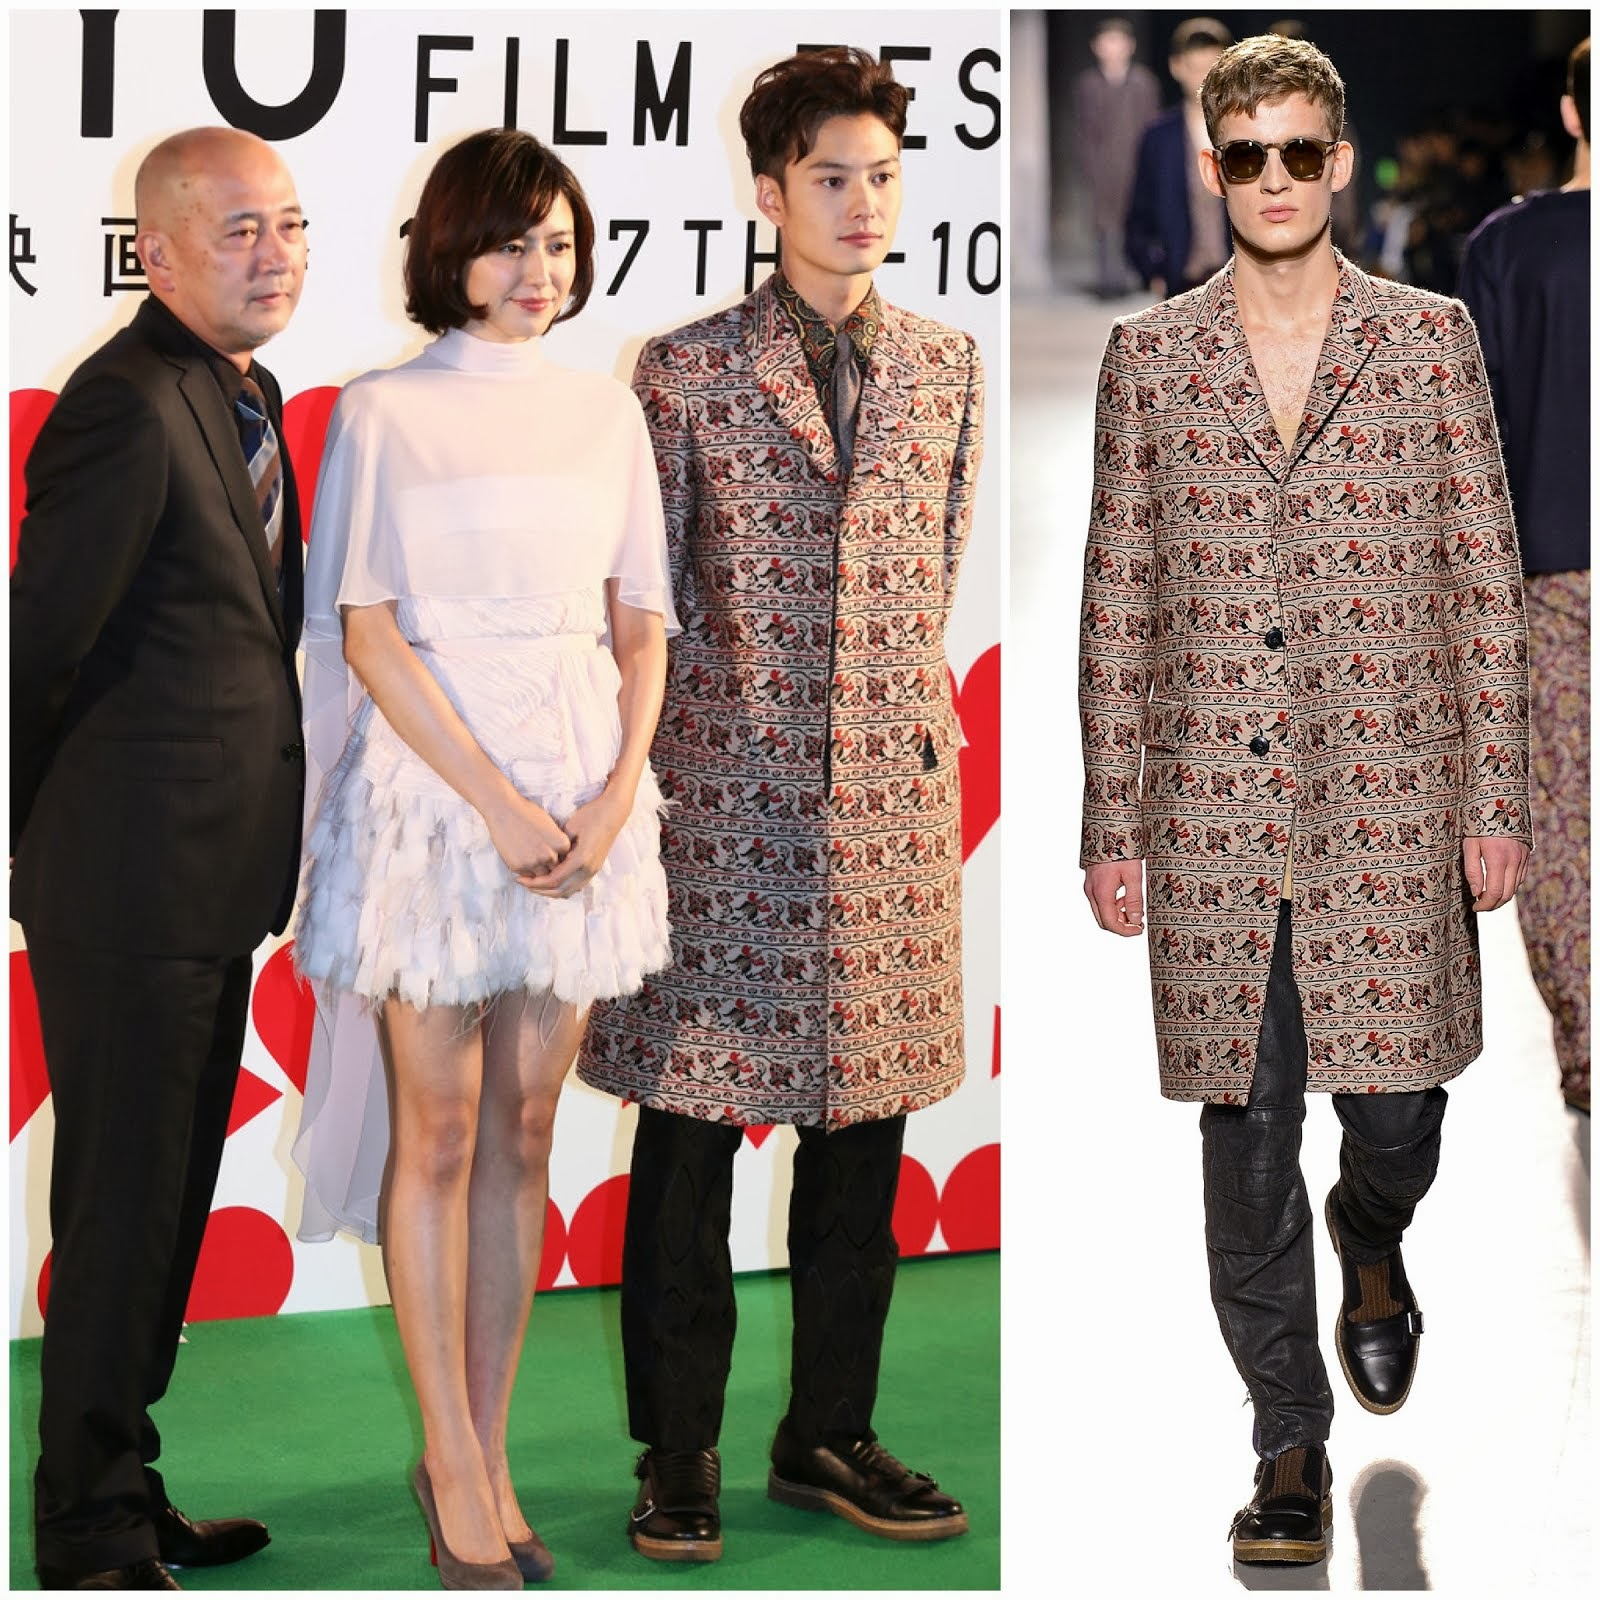 00O00 Menswear Blog: Masaki Okada [岡田将生] in Dries Van Noten - Tokyo International Film Festival October 2013